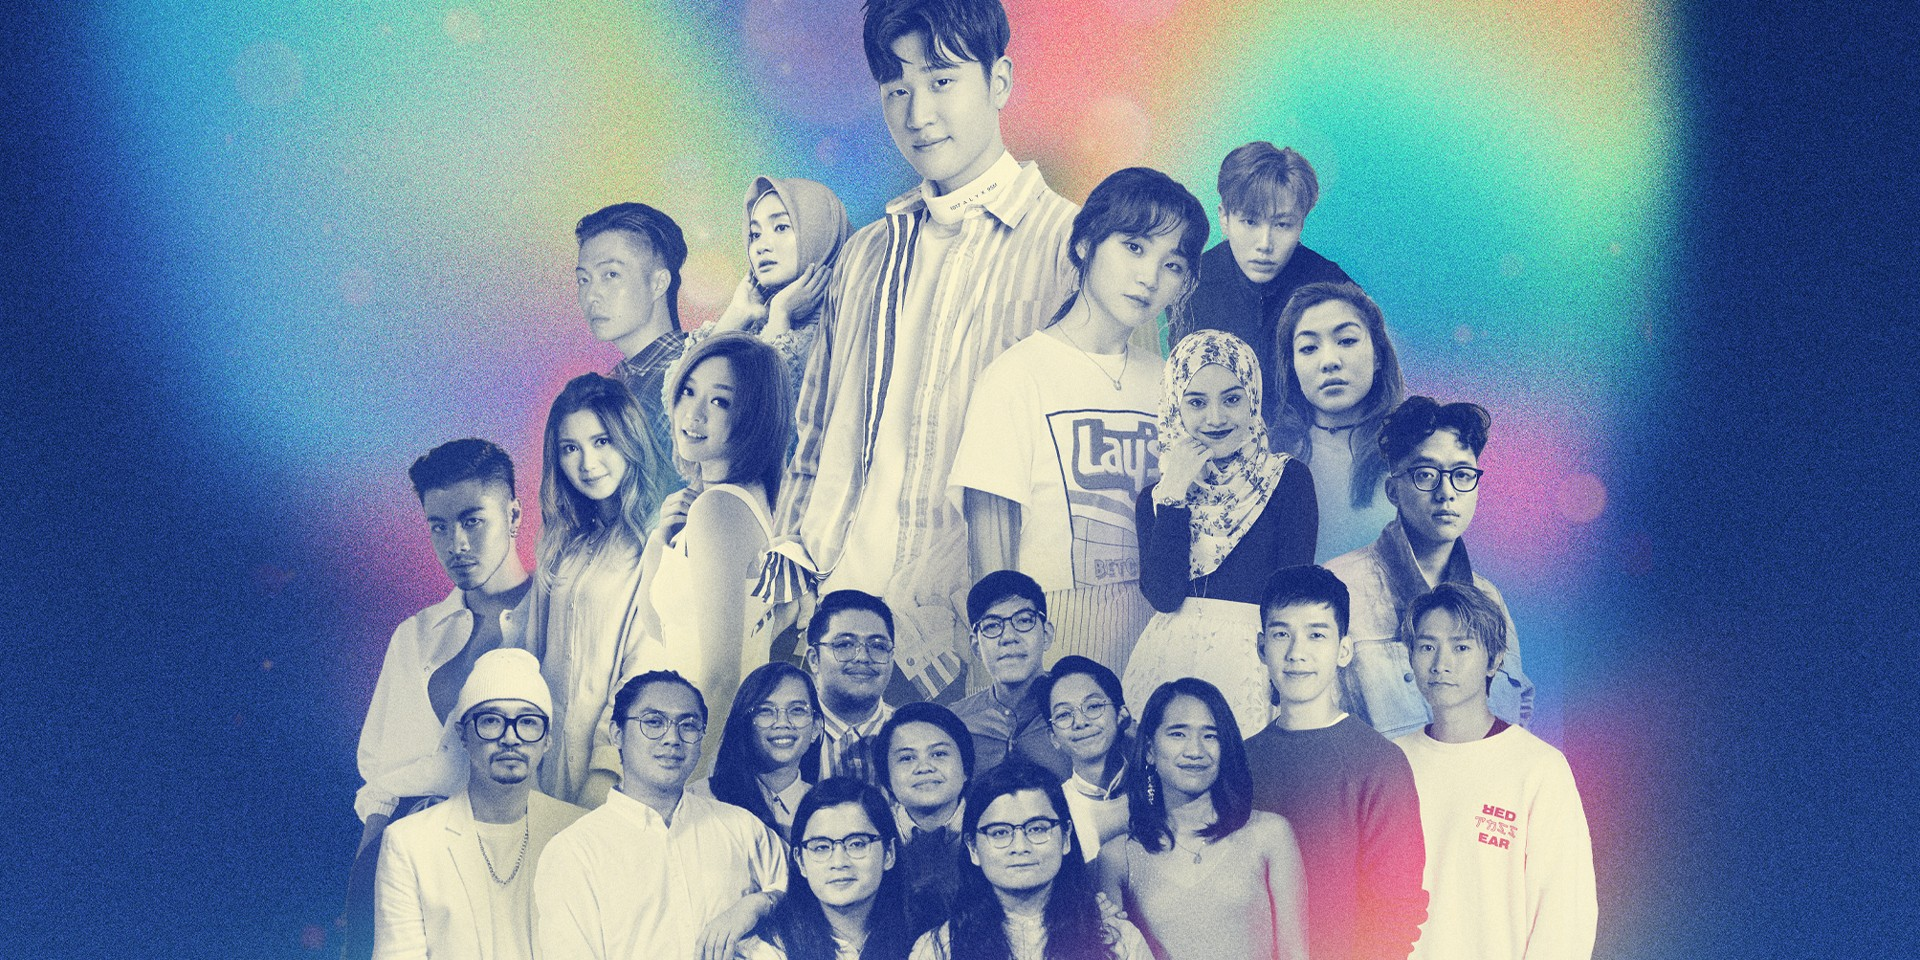 Eric Chou, Ben&Ben, Benjamin Kheng, and more release 'Forever Beautiful: All for One Version' for the benefit of coronavirus relief efforts – listen